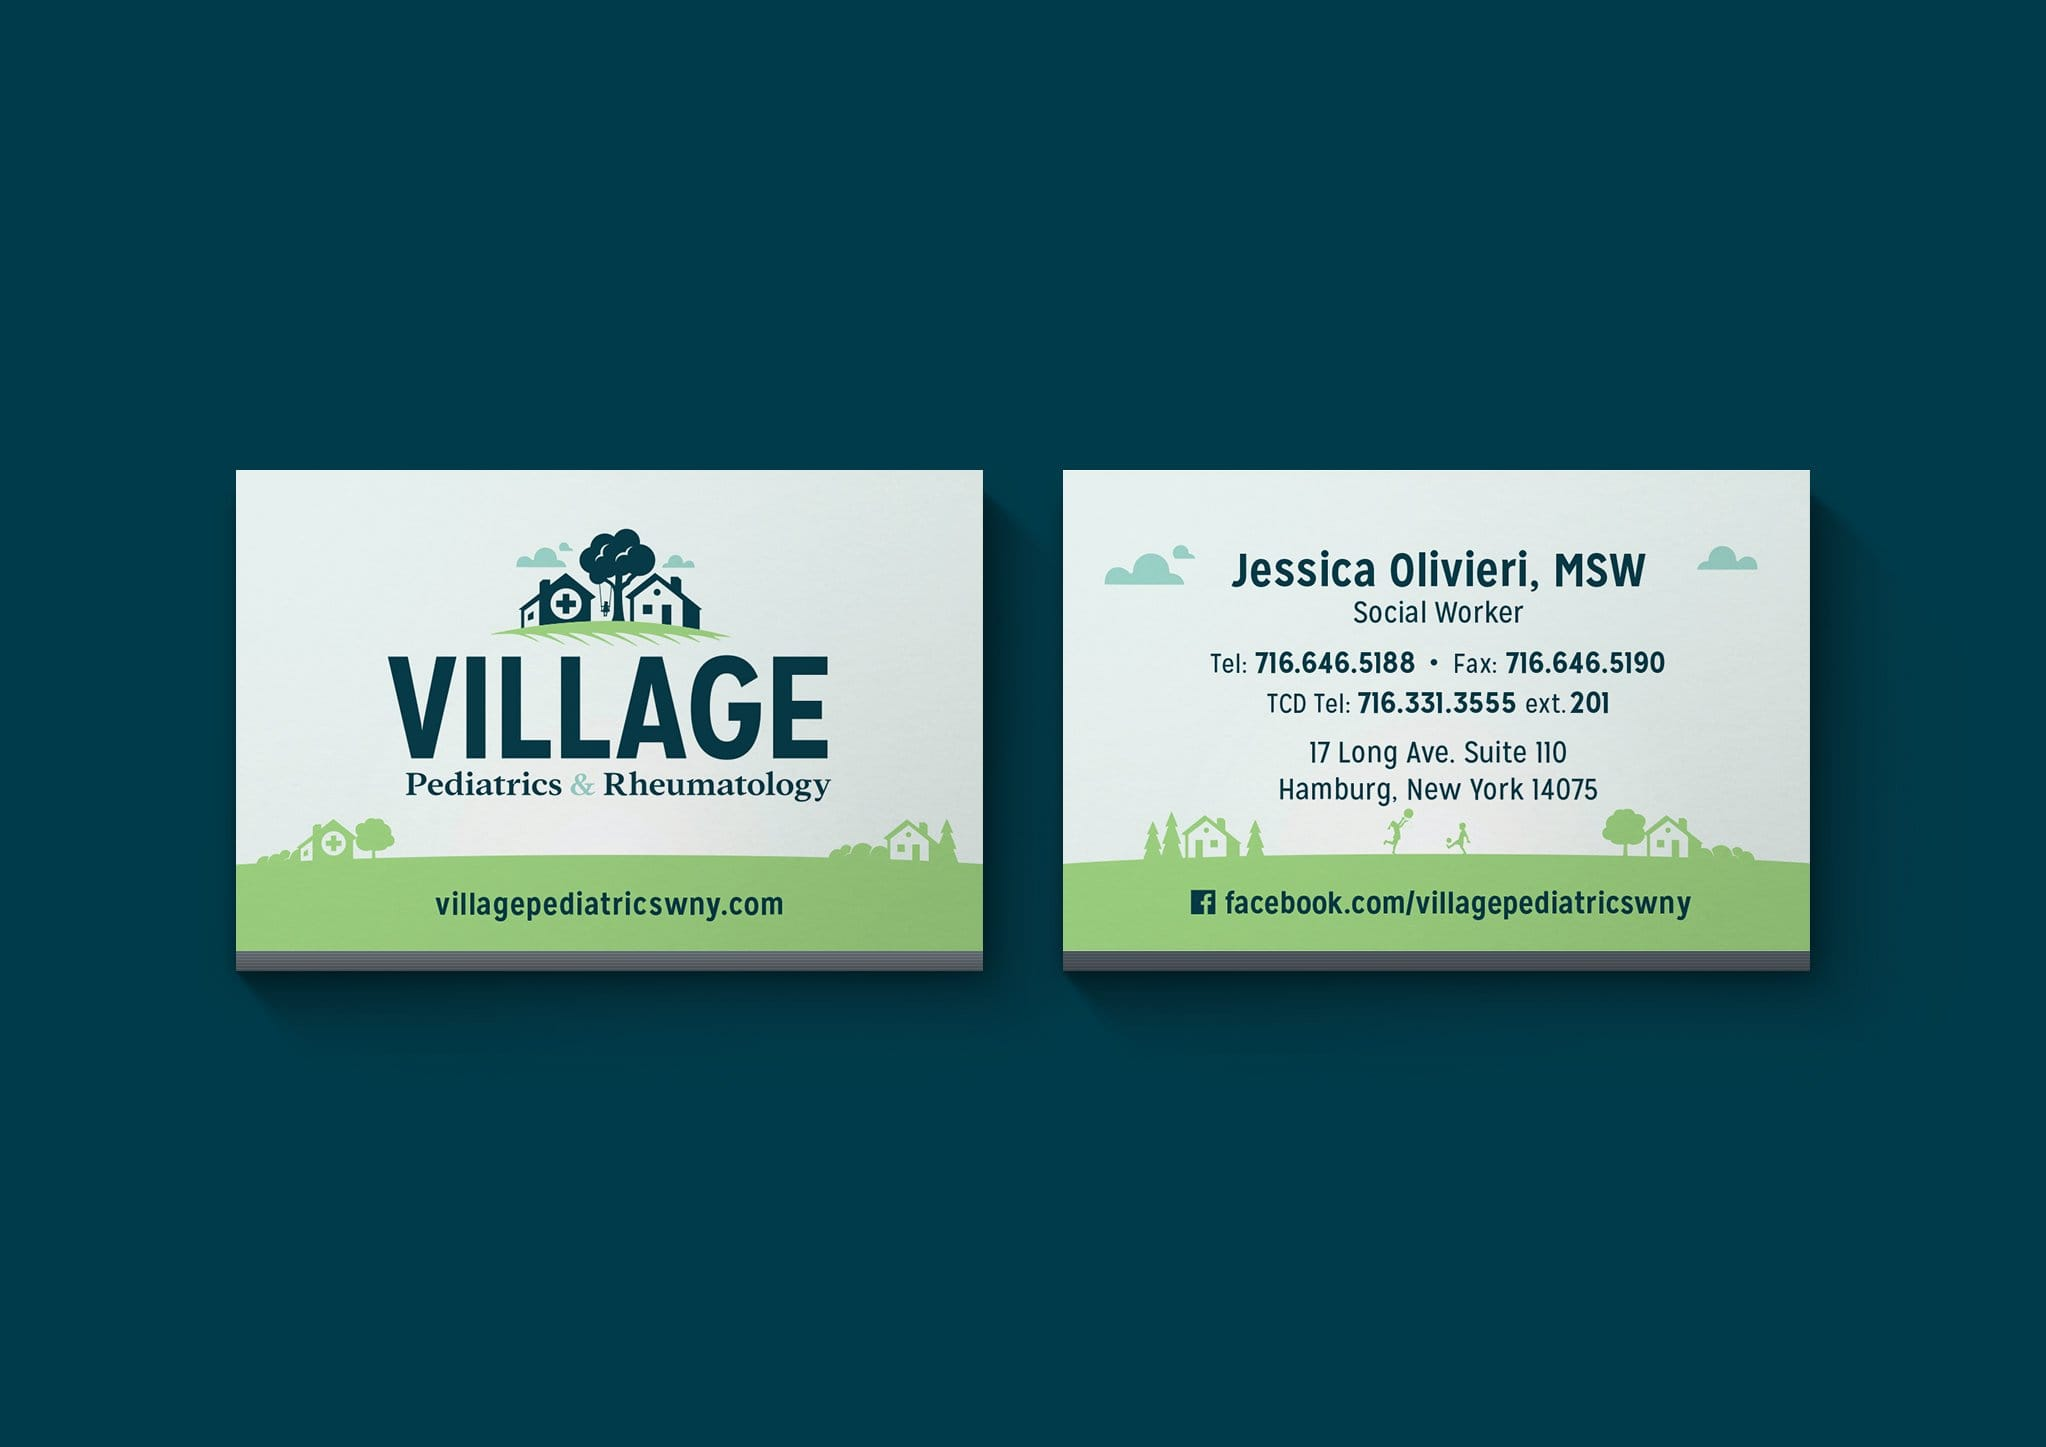 Village Pediatrics & Rheumatology Business Card Design